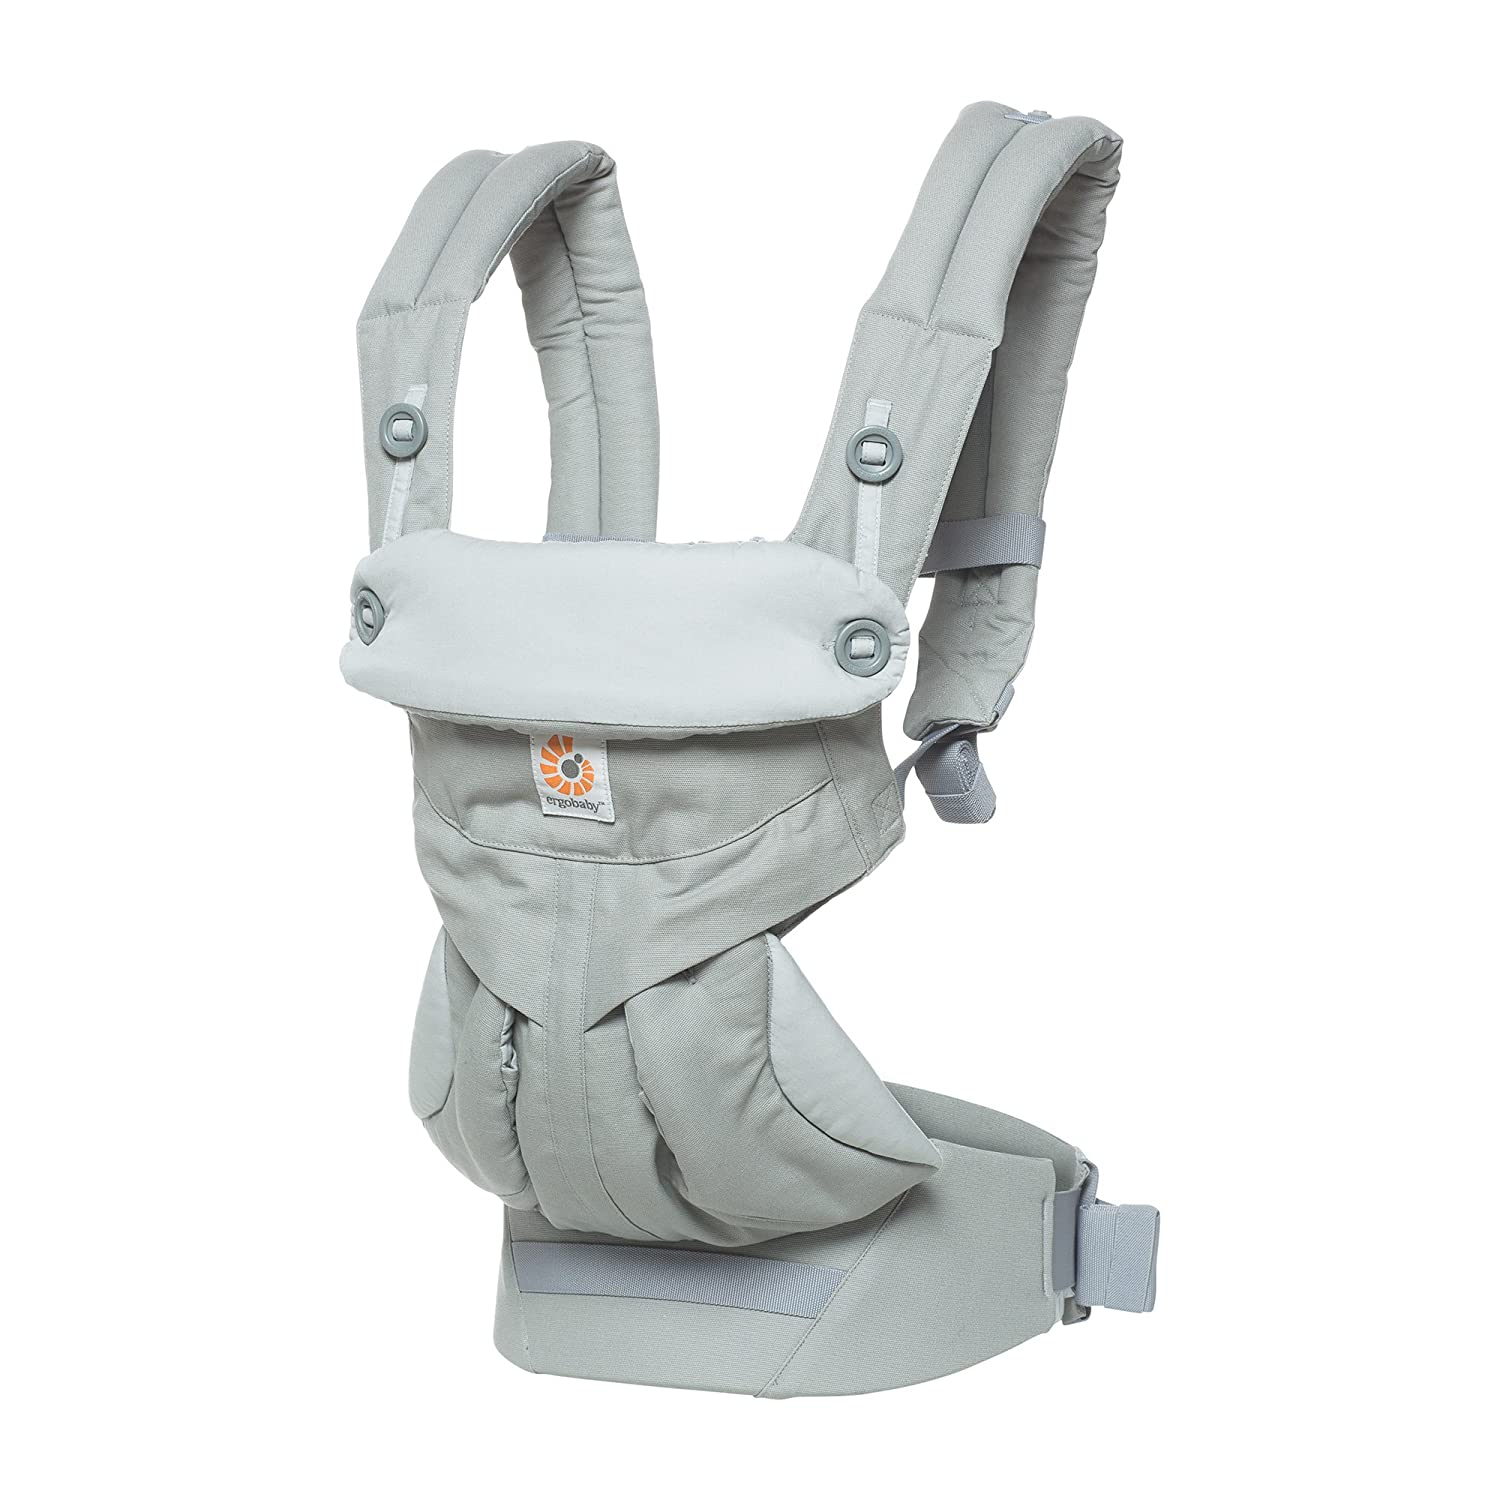 Ergobaby 360 All Carry Positions Award-Winning Ergonomic Baby Carrier, Pearl Grey BC360PEARL